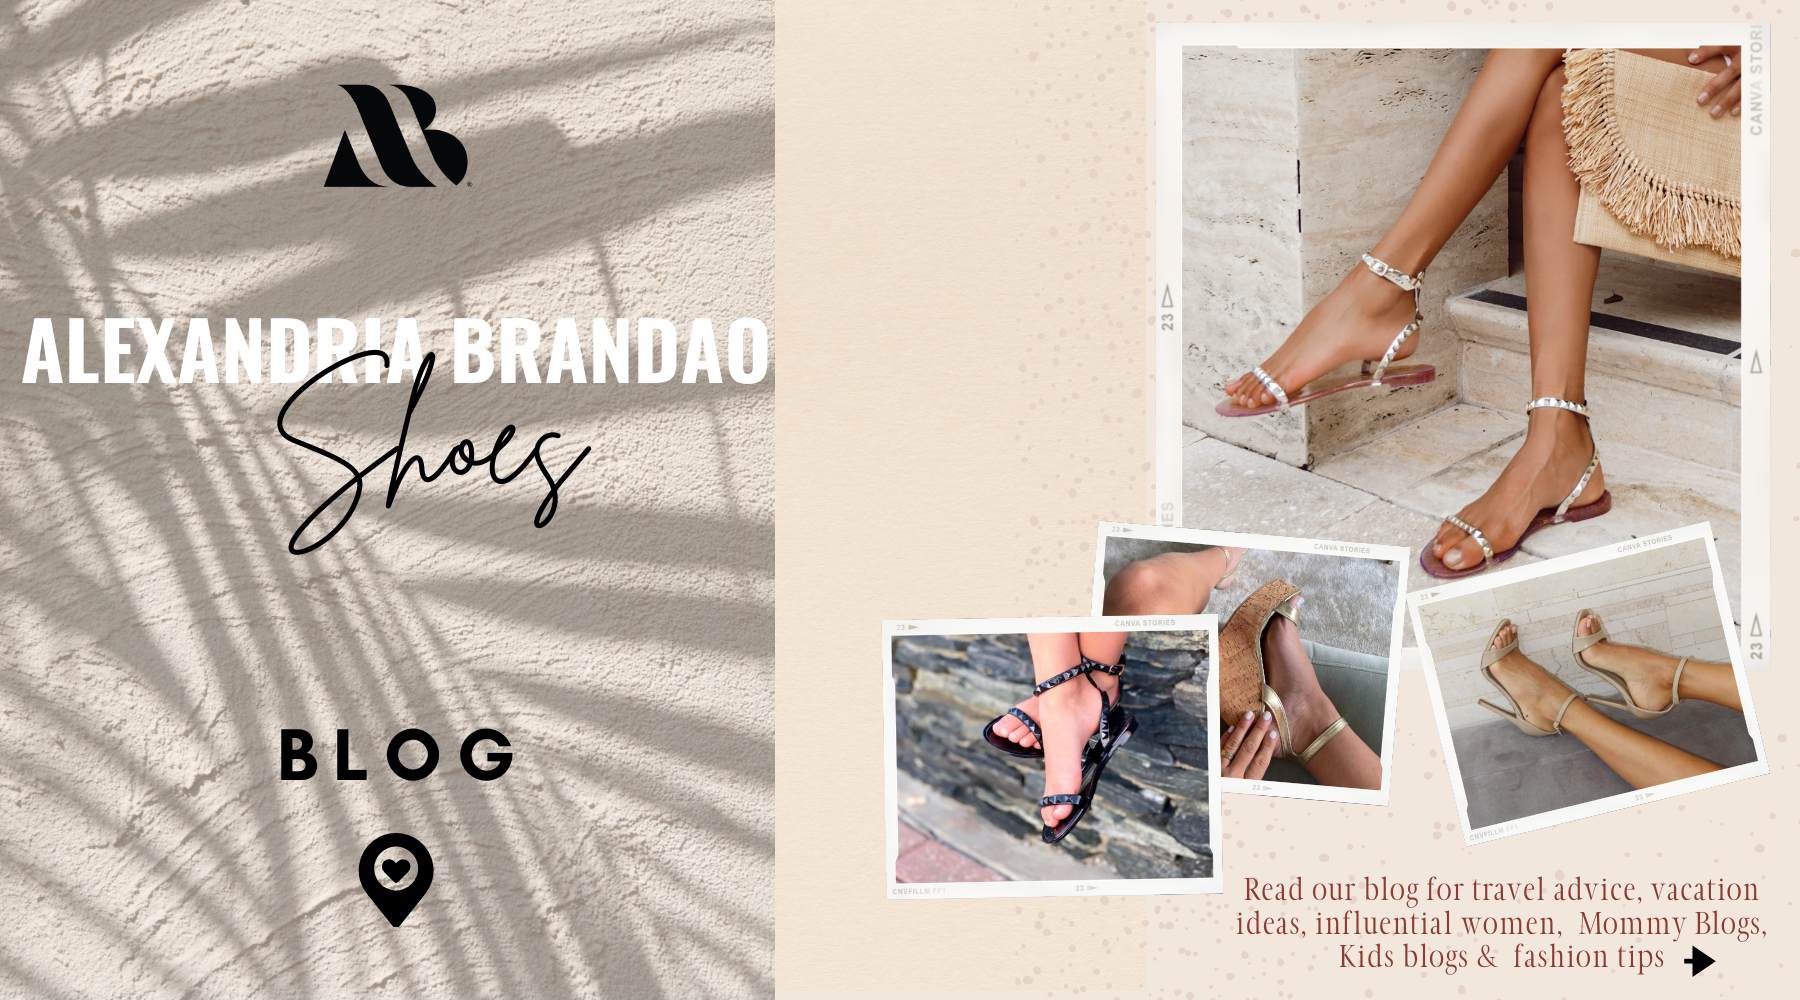 Alexandria Brandao Shoes Blog that give travel trips and fashion tips on how, where and how to wear their shoes! Pictured at our women and kid's jelly sandals and women's heels and wedges.